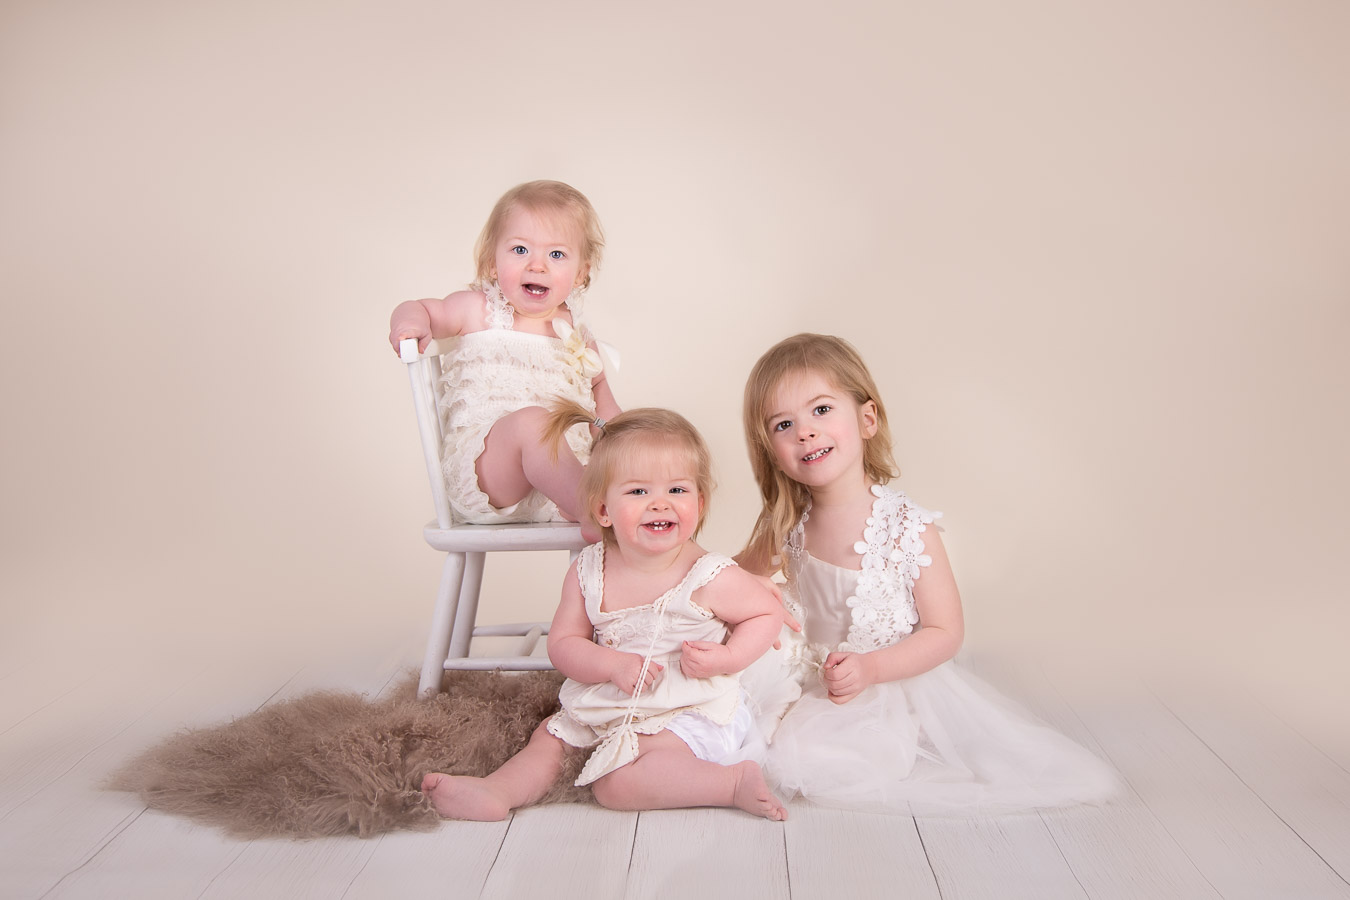 Image of 3 sisters posing for classic session from Halifax Family Photographer